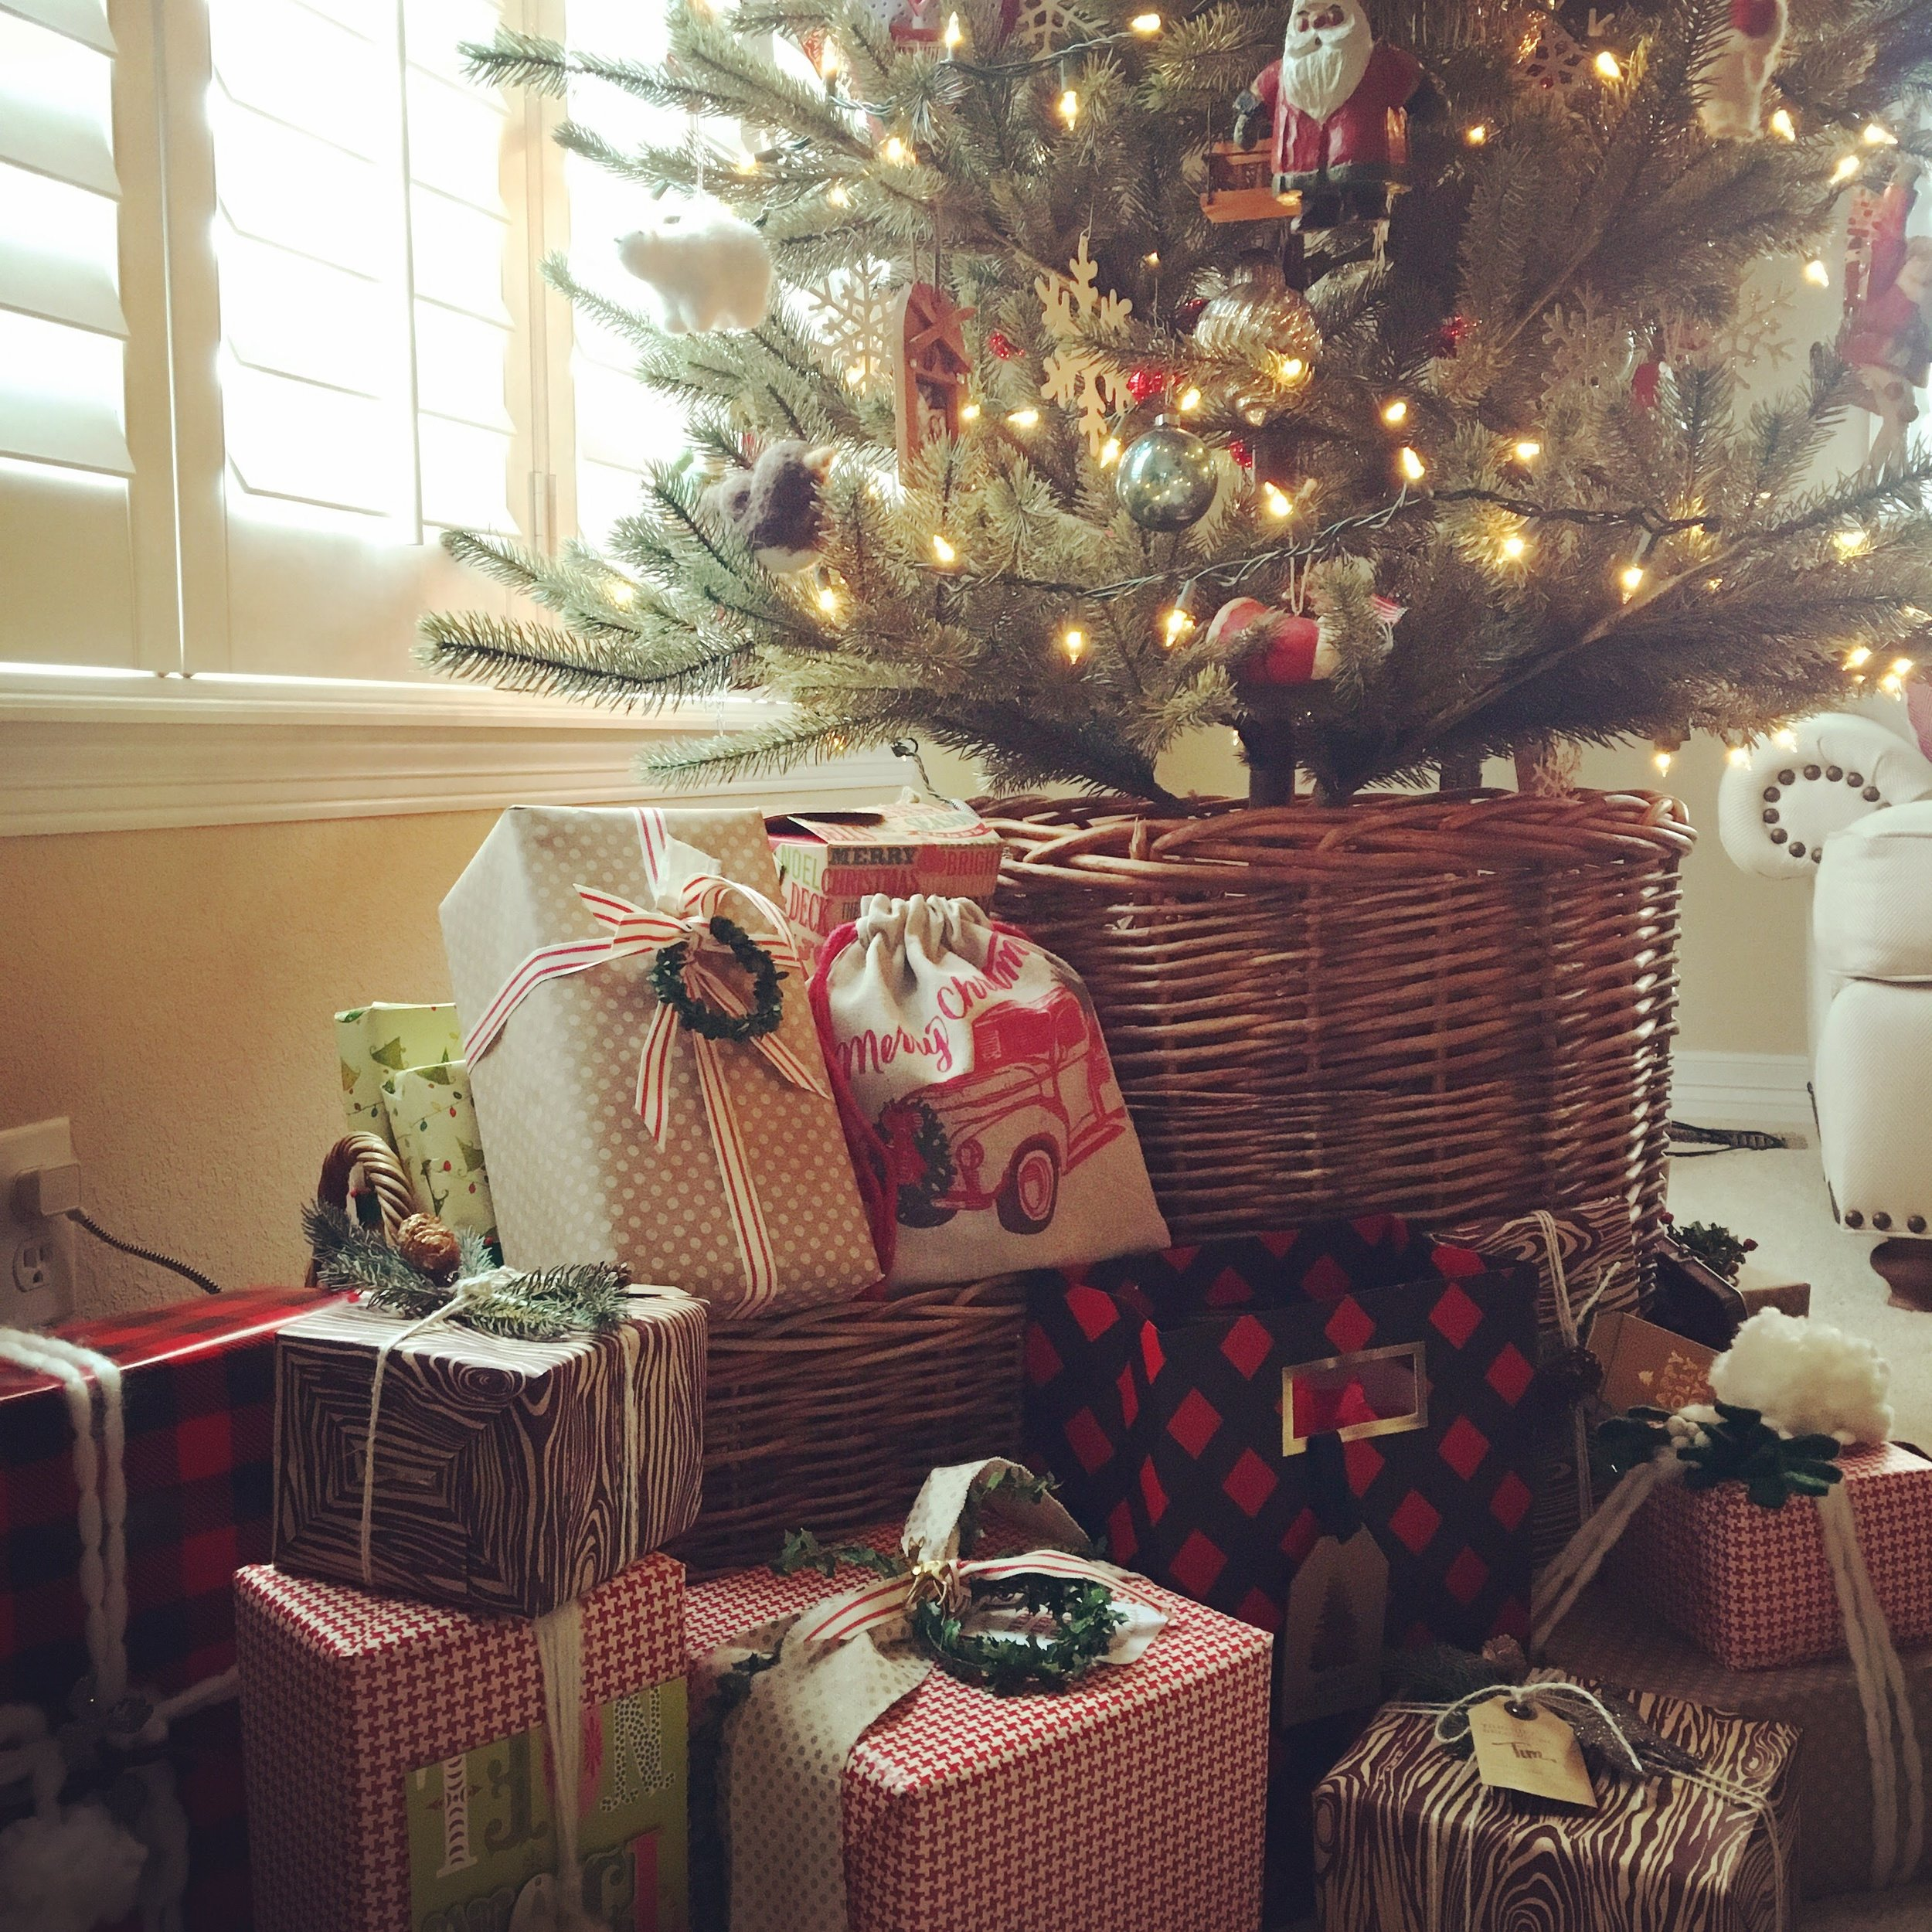 For me the wrapped gifts are part of the decor, I try to get presents in advance so I can get them wrapped and under the tree when we decorate for Christmas just after Thanksgiving.